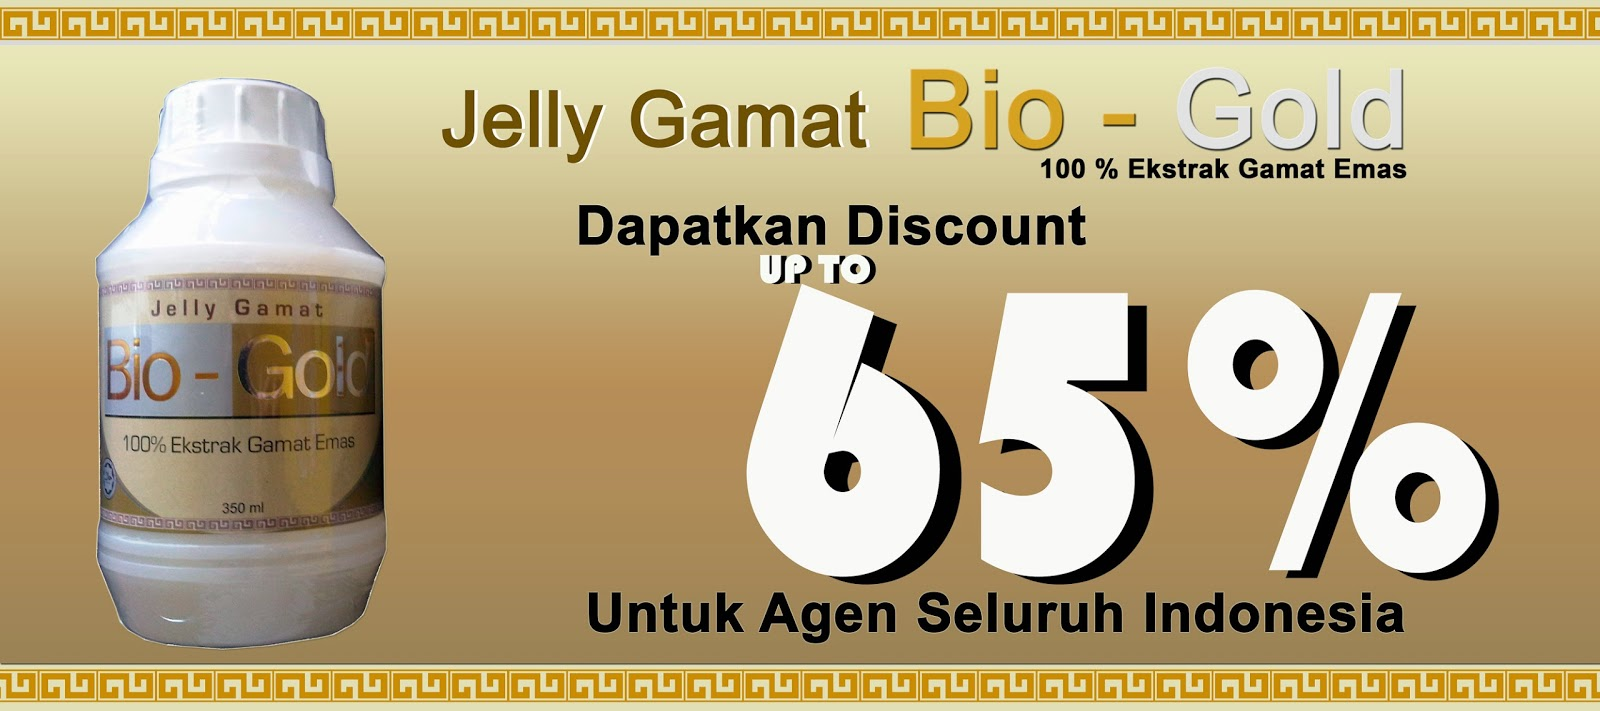 Promo Jelly Gamat Bio-Gold